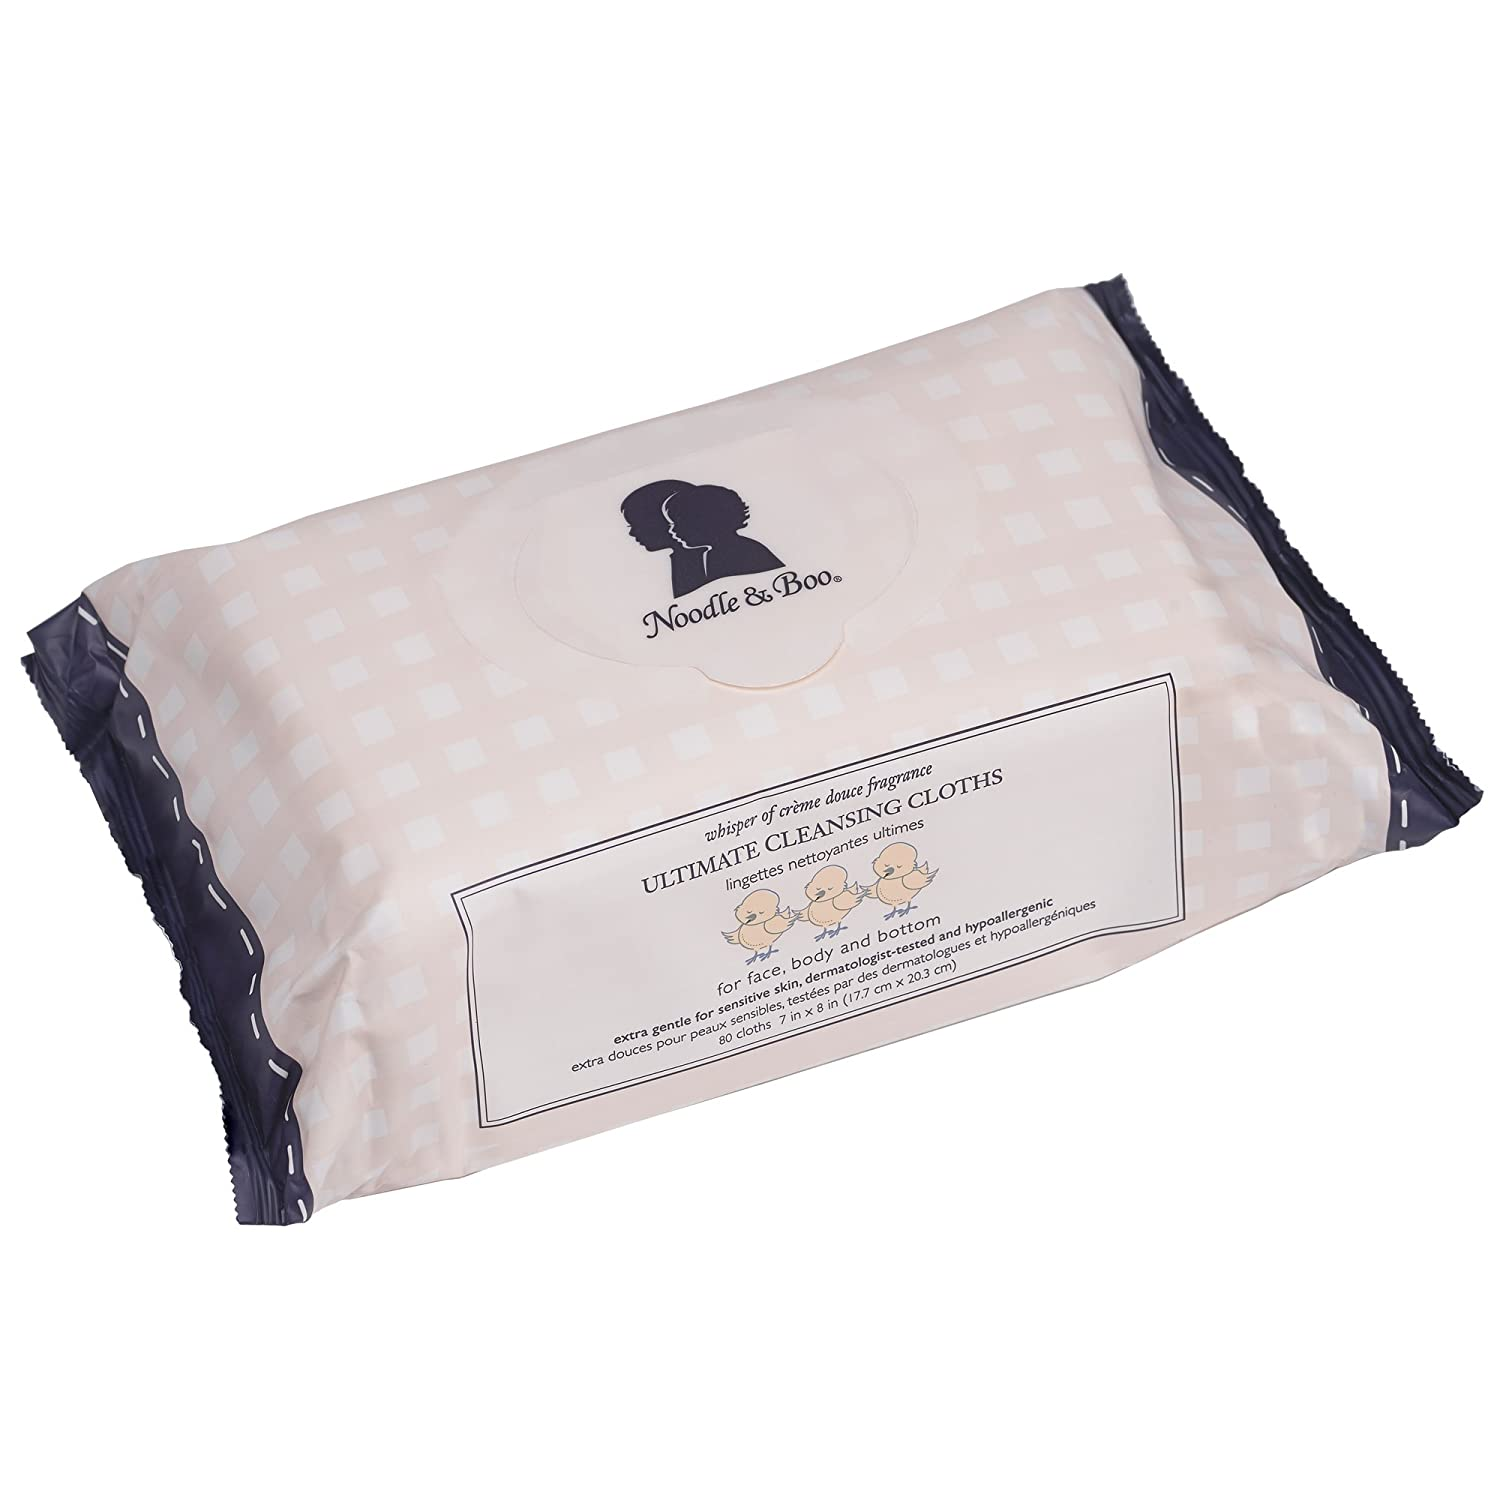 ヌードル Body&ブー Ultimate Cleansing Cleansing Cloths - For Bottom Face, Body & Bottom - 7